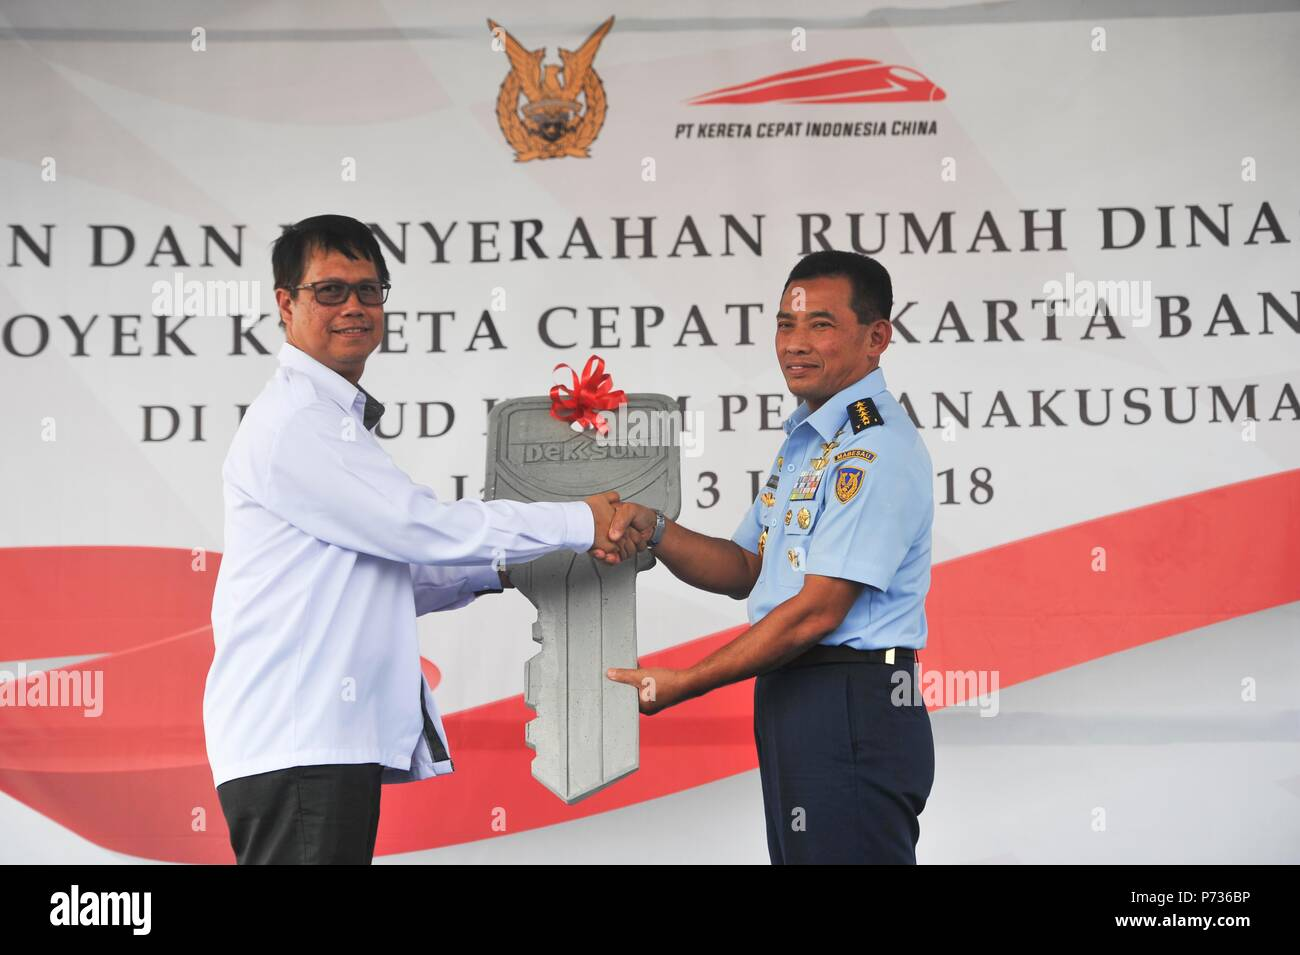 (180704) -- JAKARTA, July 4, 2018 (Xinhua) -- KCIC President Director Chandra Dwiputra (L) and Indonesian Air Force Chief of Staff Marshall Yuyu Sutisna attend the handover ceremony in Halim Perdanakusumah air base in eastern Jakarta, Indonesia, July 3, 2018. China-Indonesia joint firm carrying out the Jakarta-Bandung High-Speed Railway project, KCIC, handed over on Tuesday a housing cluster to compensate houses and land of Indonesian air force personnel which were used by the project. A total of 408 houses located in five zones were built by KCIC in the air force compound, comprised of houses - Stock Image